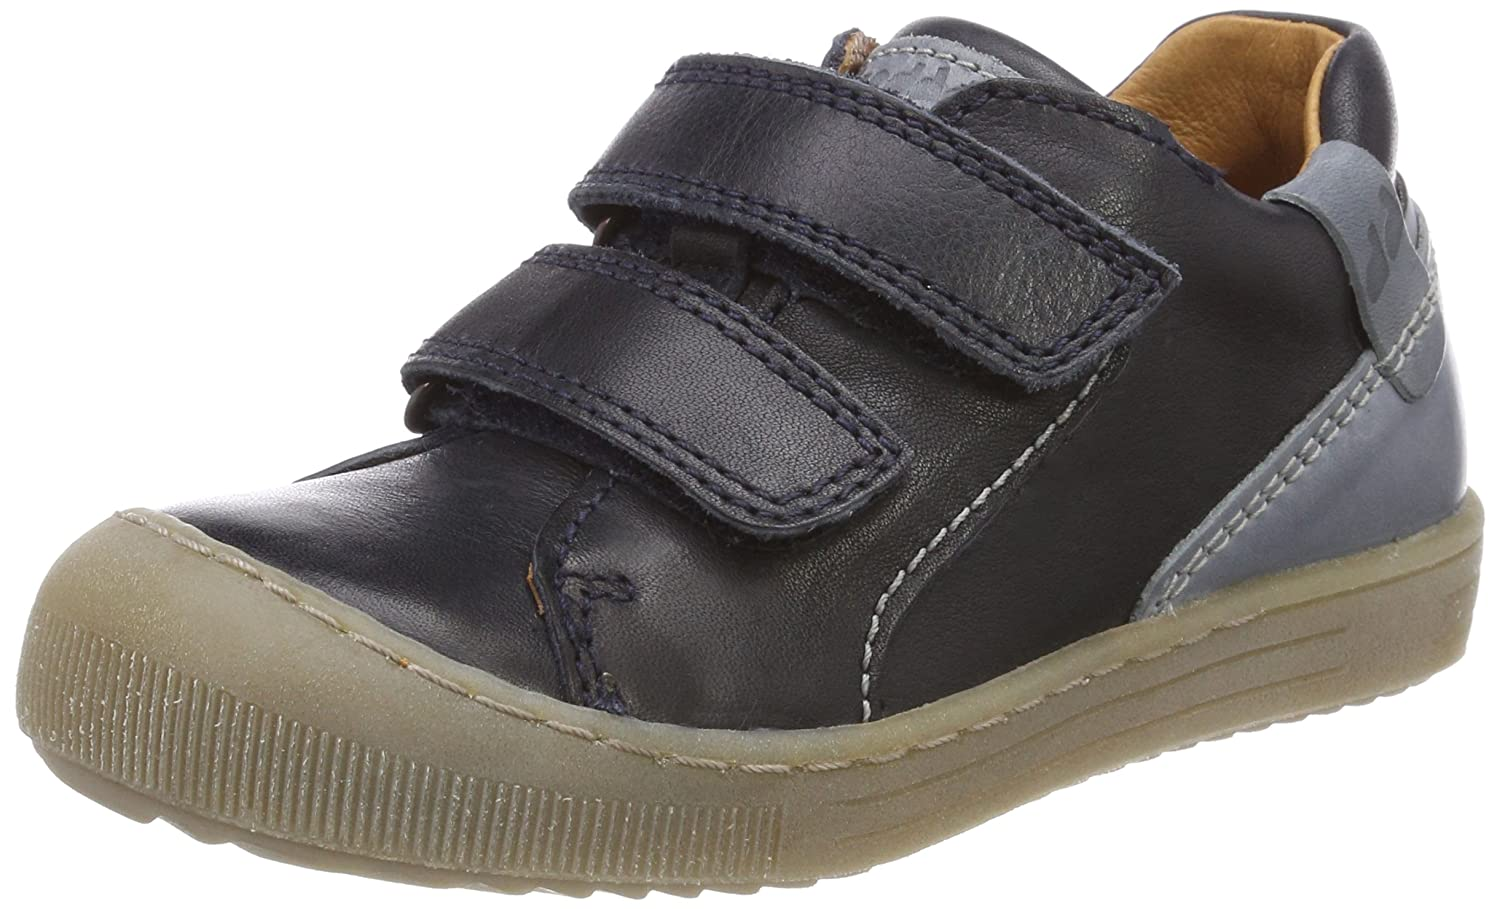 FRODDO Children Shoe G3130108, Baskets Garçon, Bleu (Dark Blue I17), 25 EU